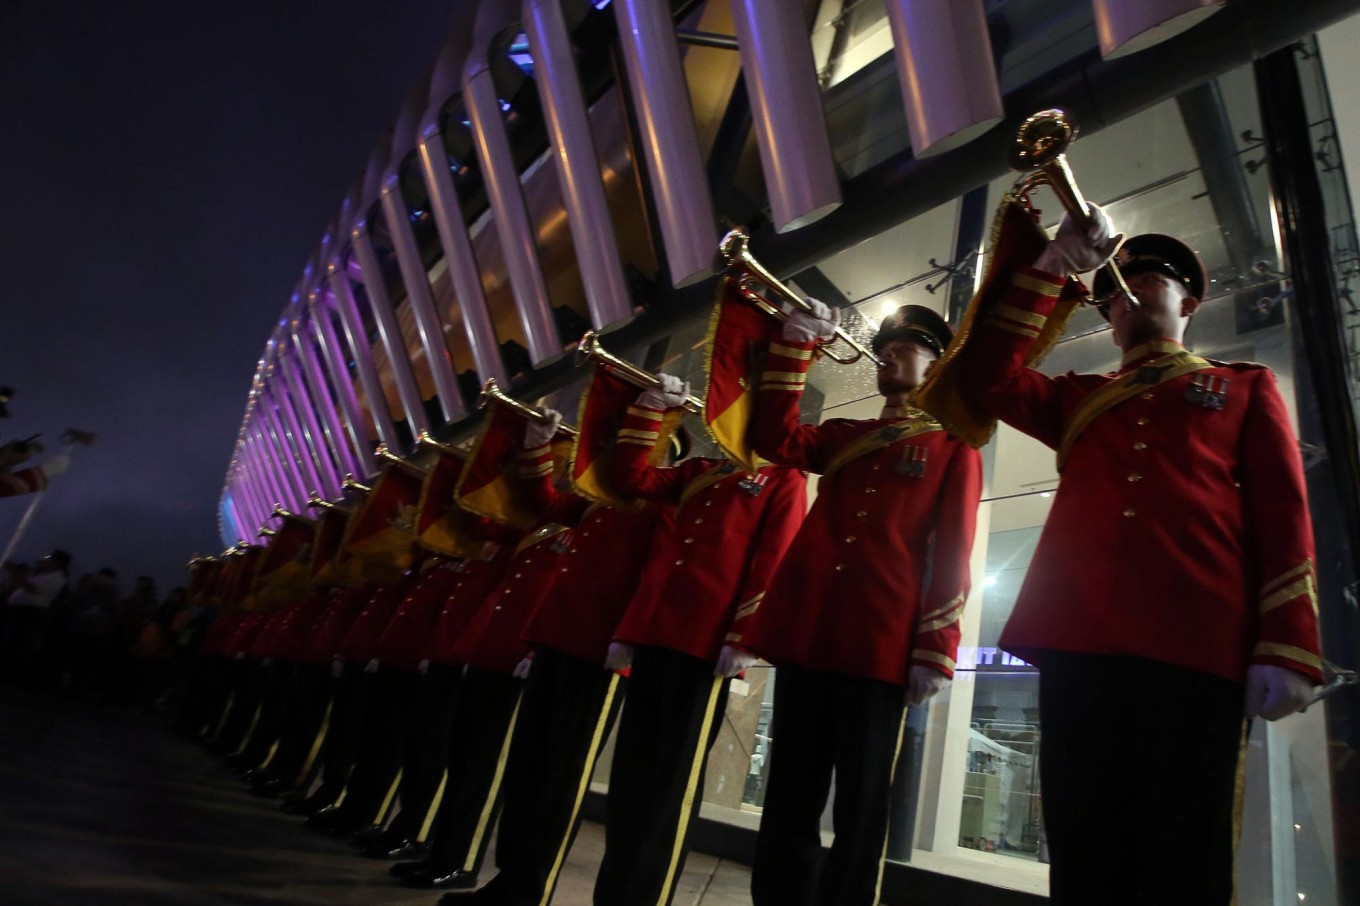 Trumpet squad plays its instruments as Sultan Muhammad V leaves the stadium after the opening of the SEA Games. JP/Seto Wardhana